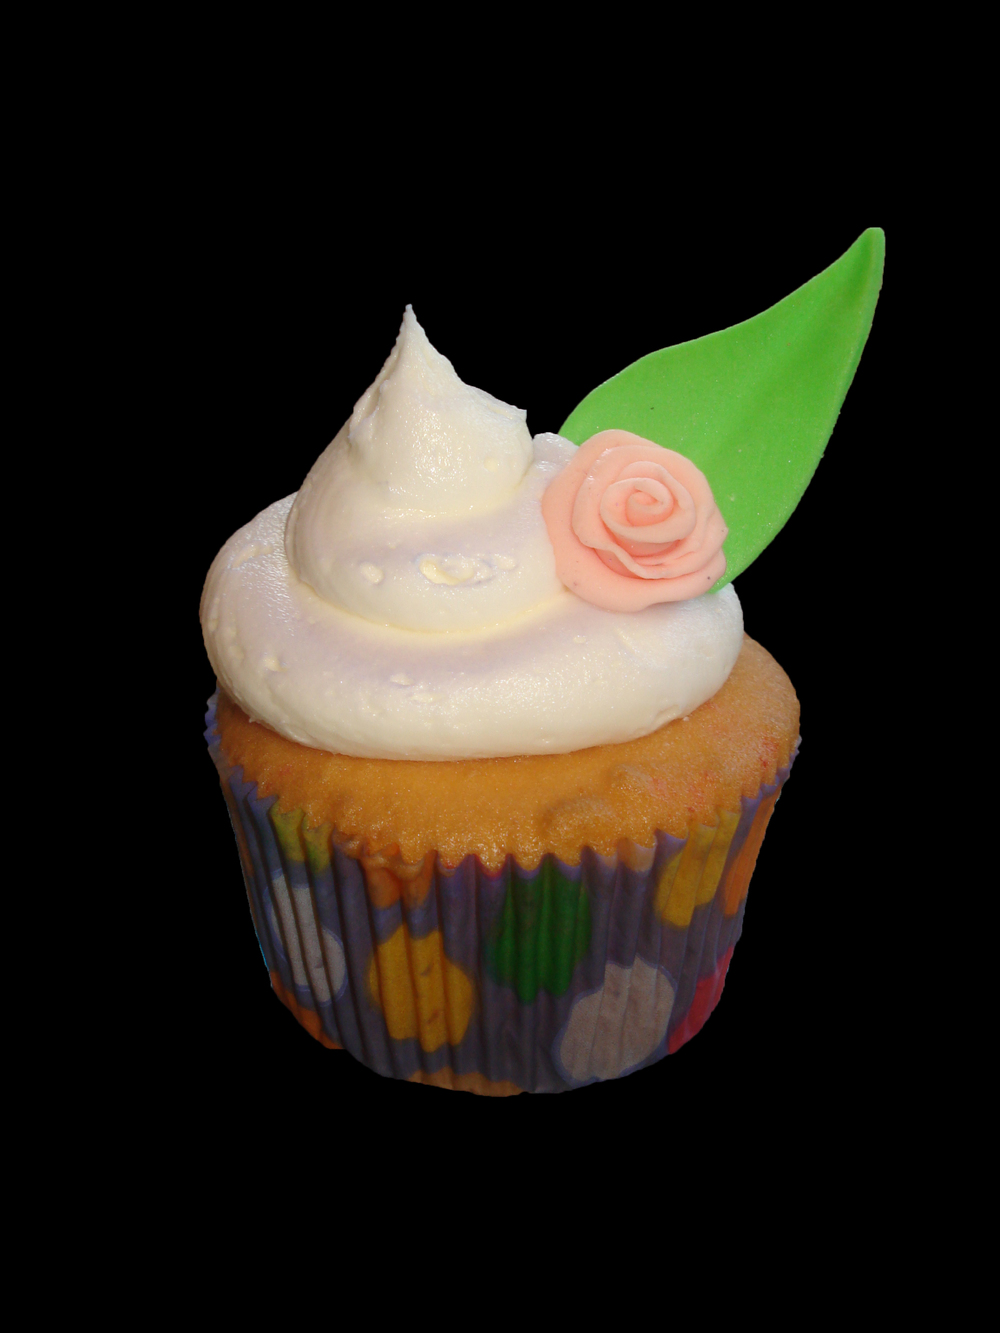 xCupcake Flower and Leaf.jpg